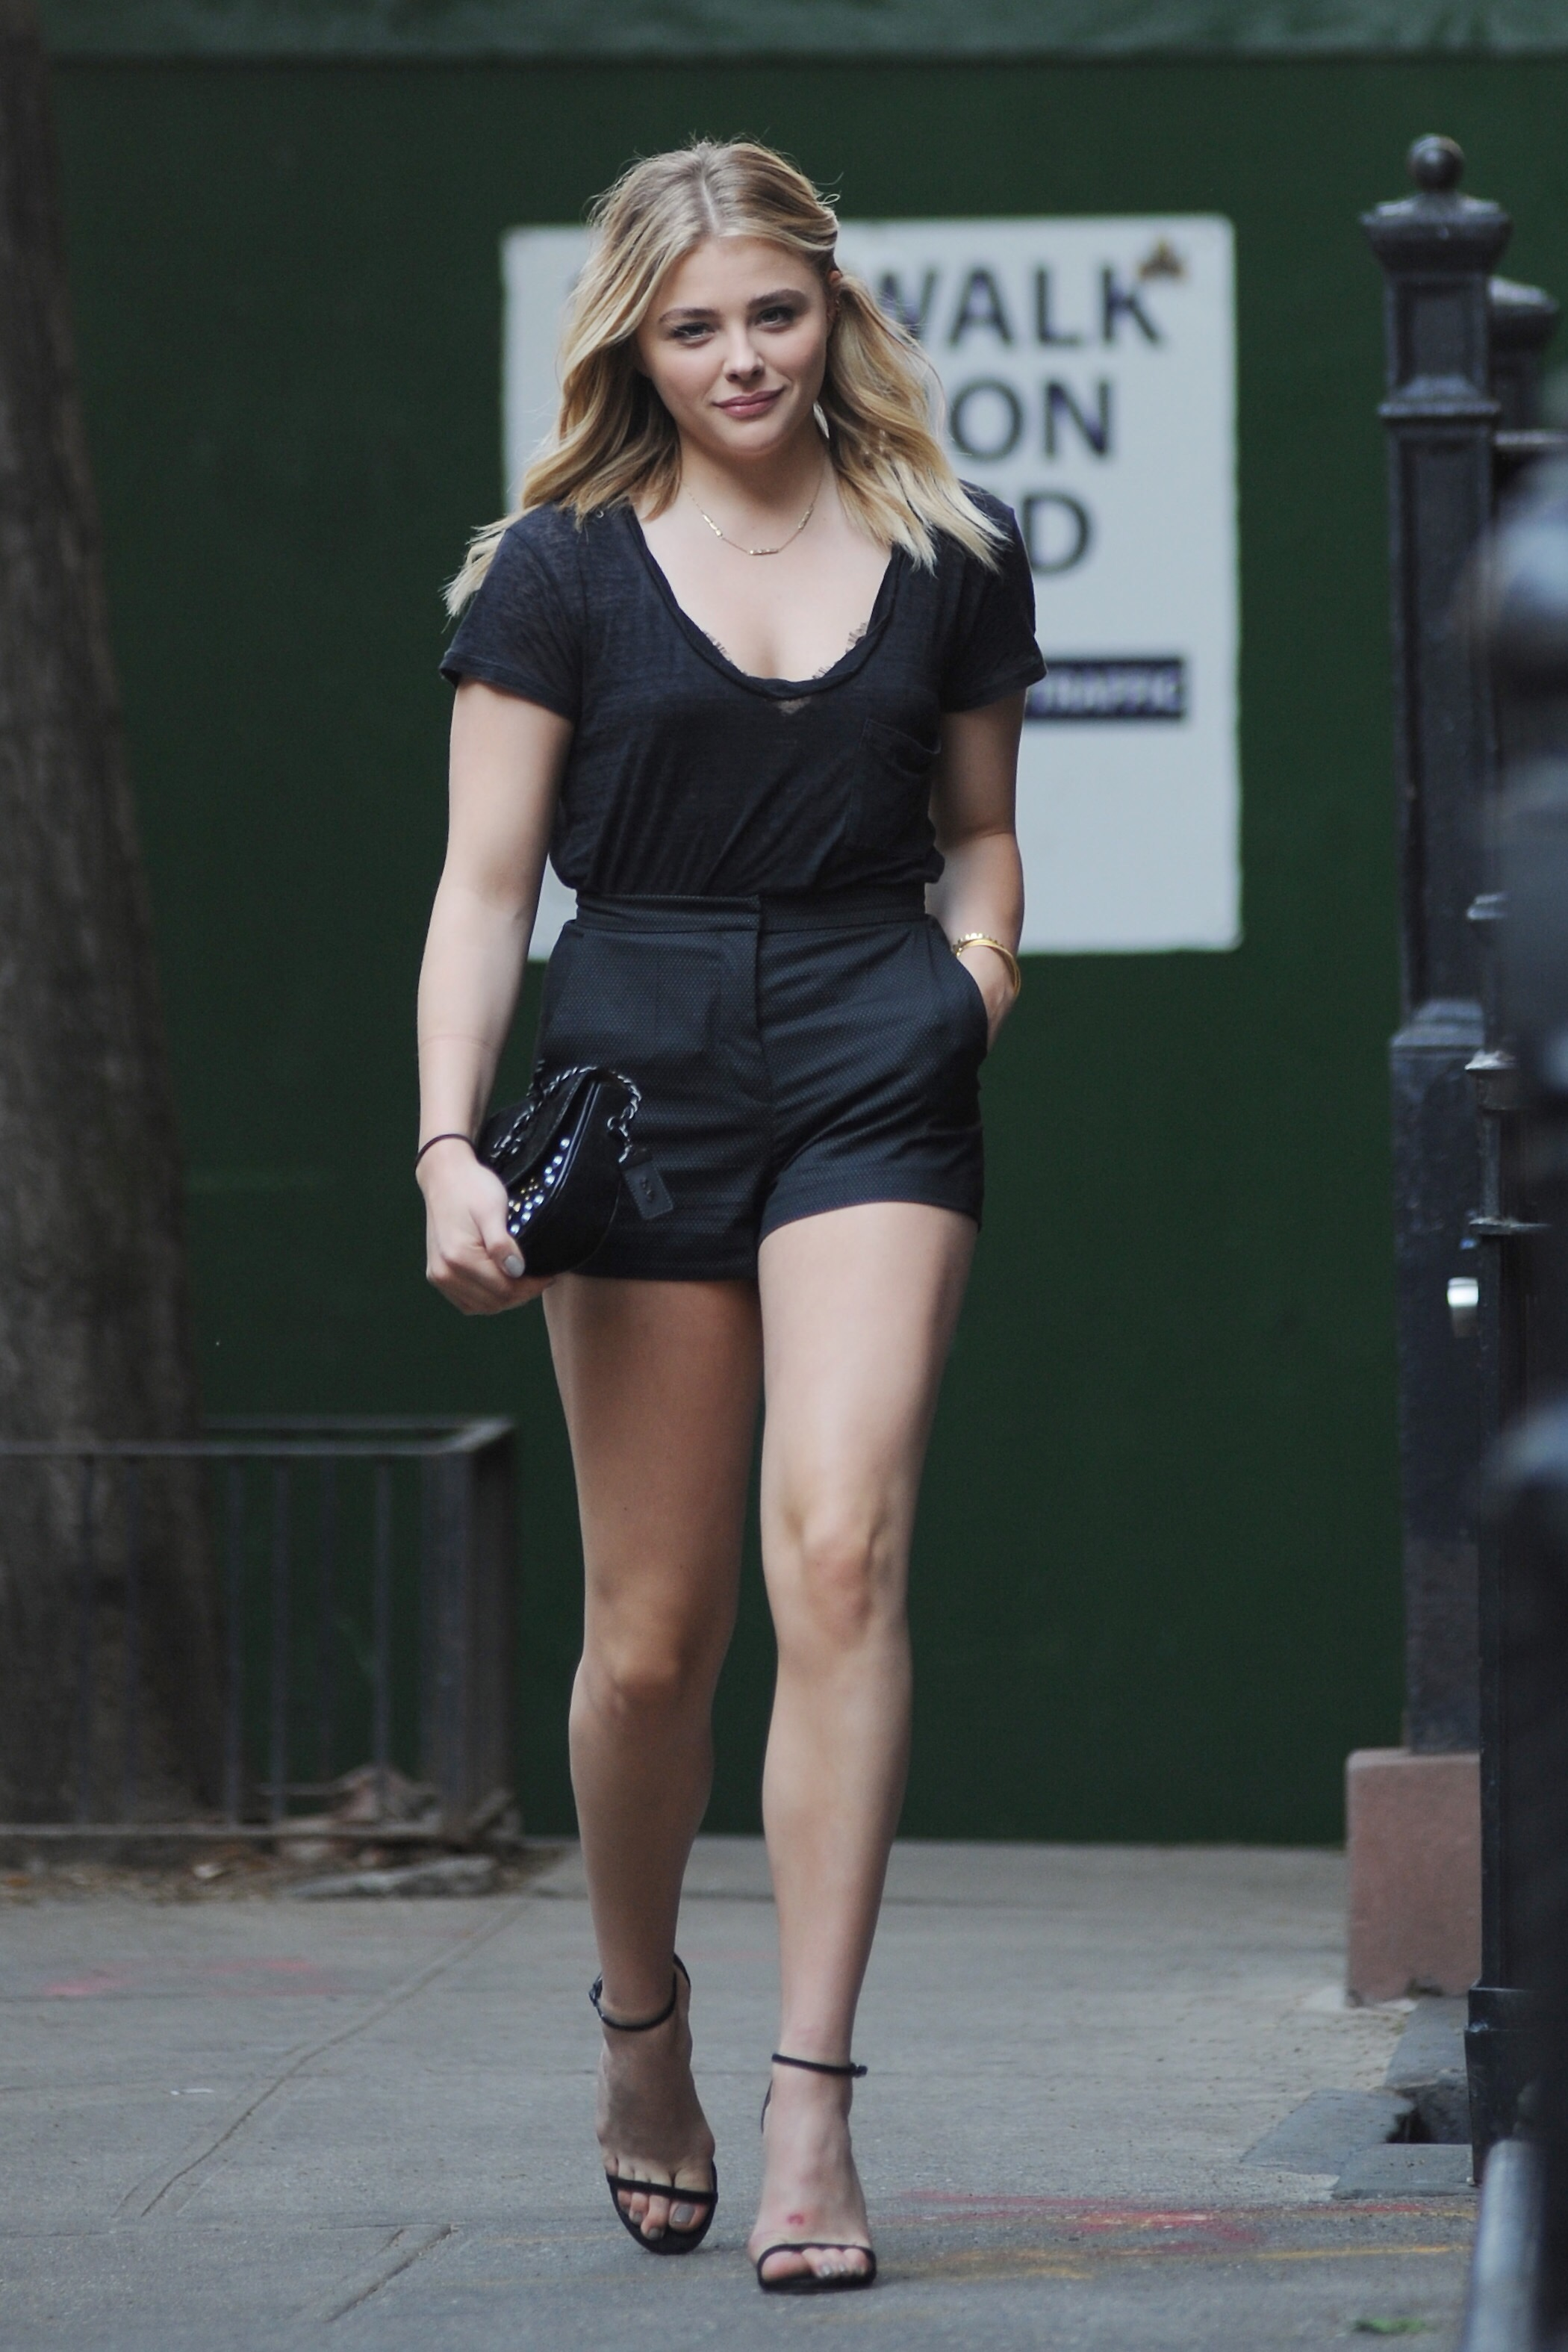 chloë grace moretz | only in high heels